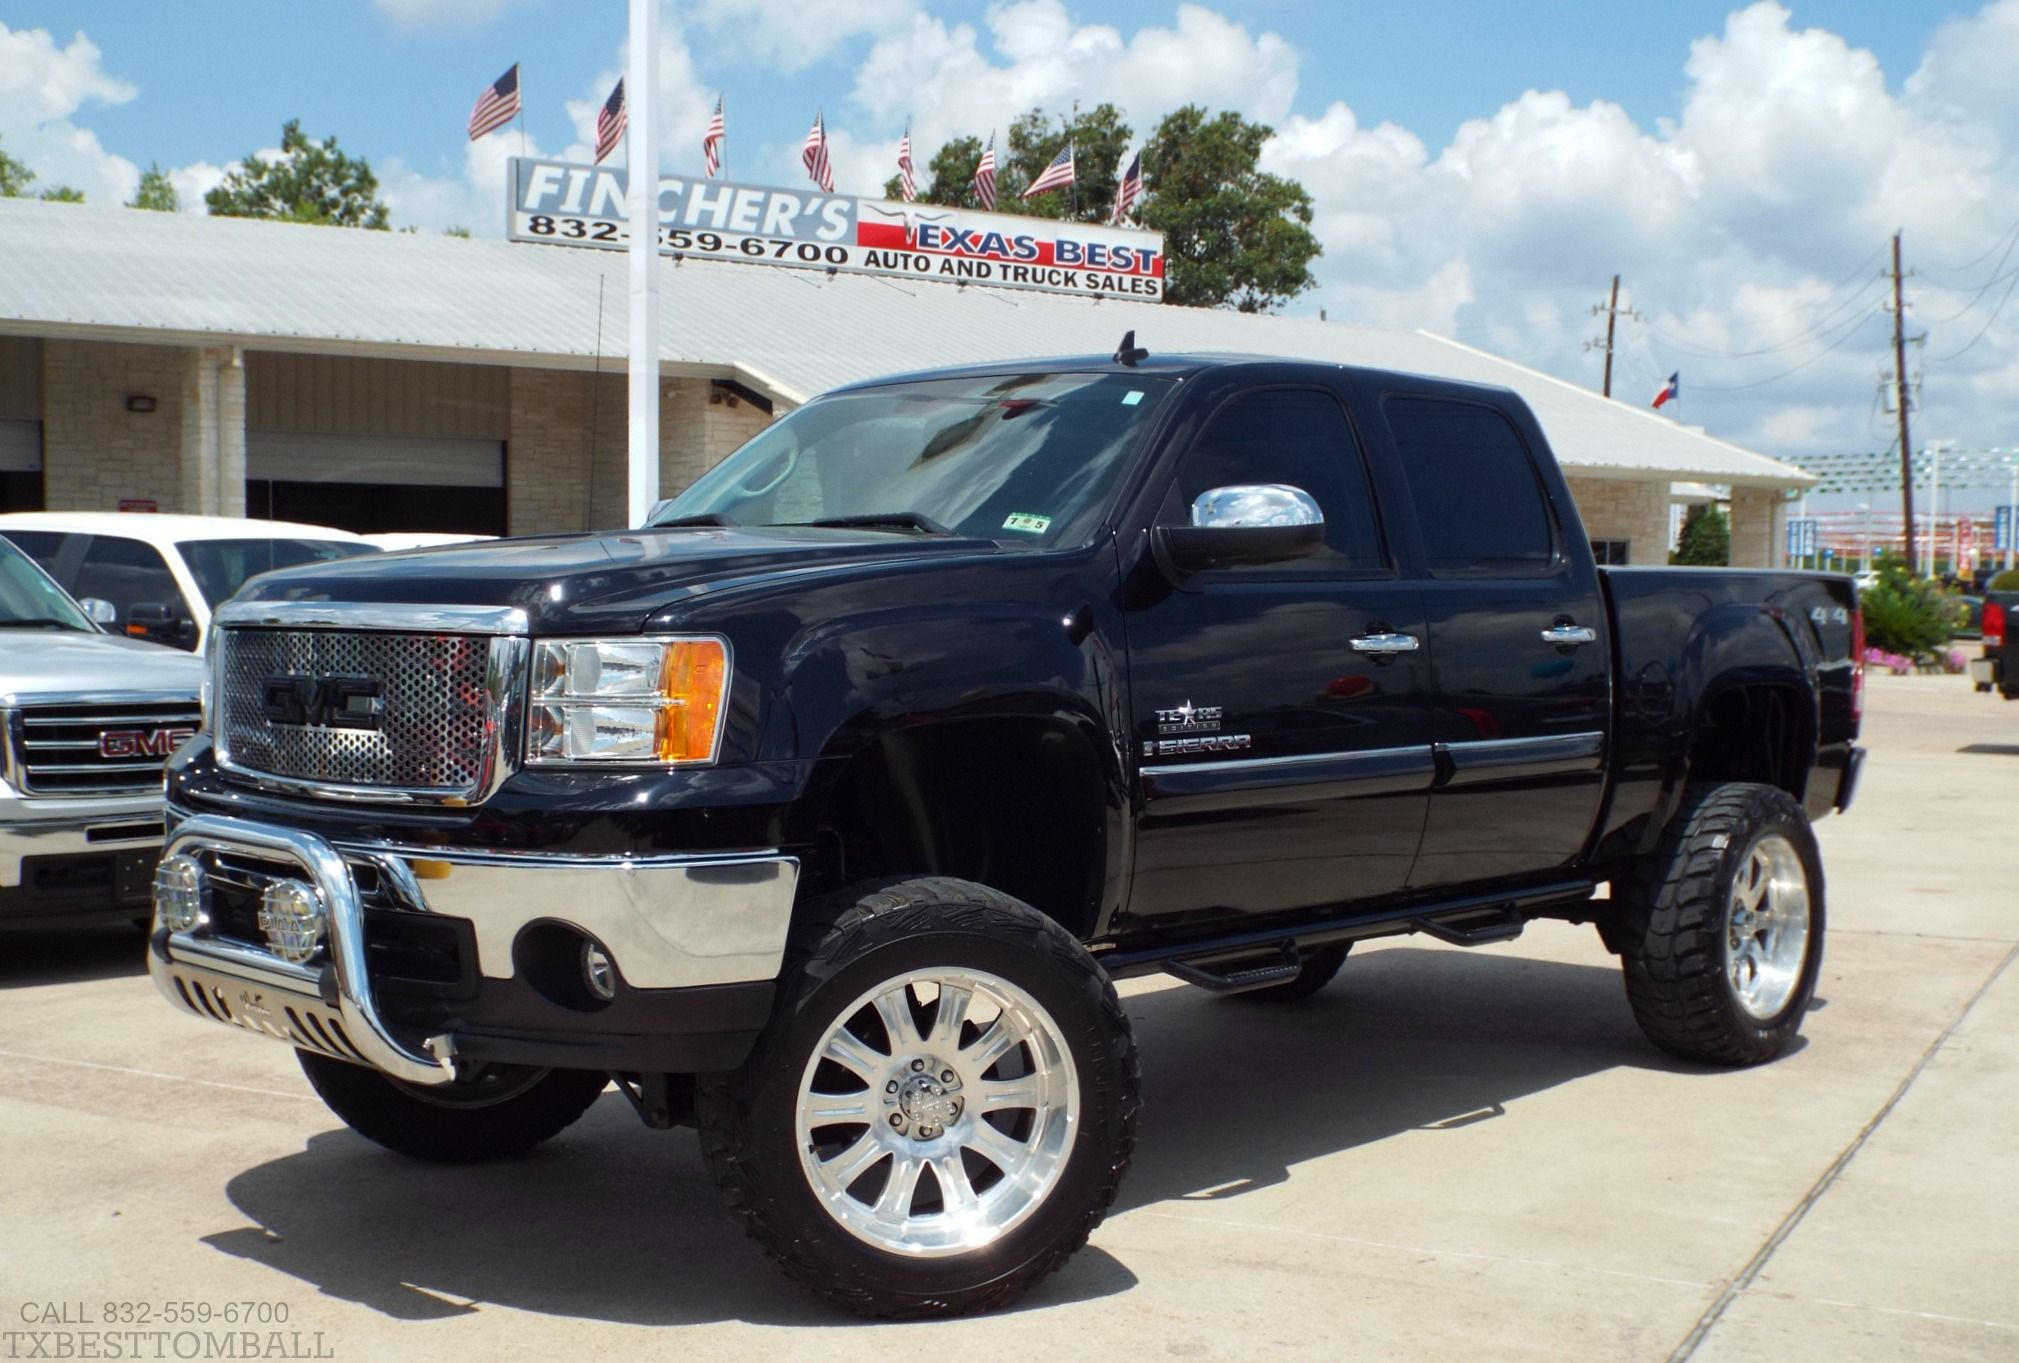 2009 Gmc Sierra 1500 Crew Cab Sle 4x4 Truck For Sale Only At